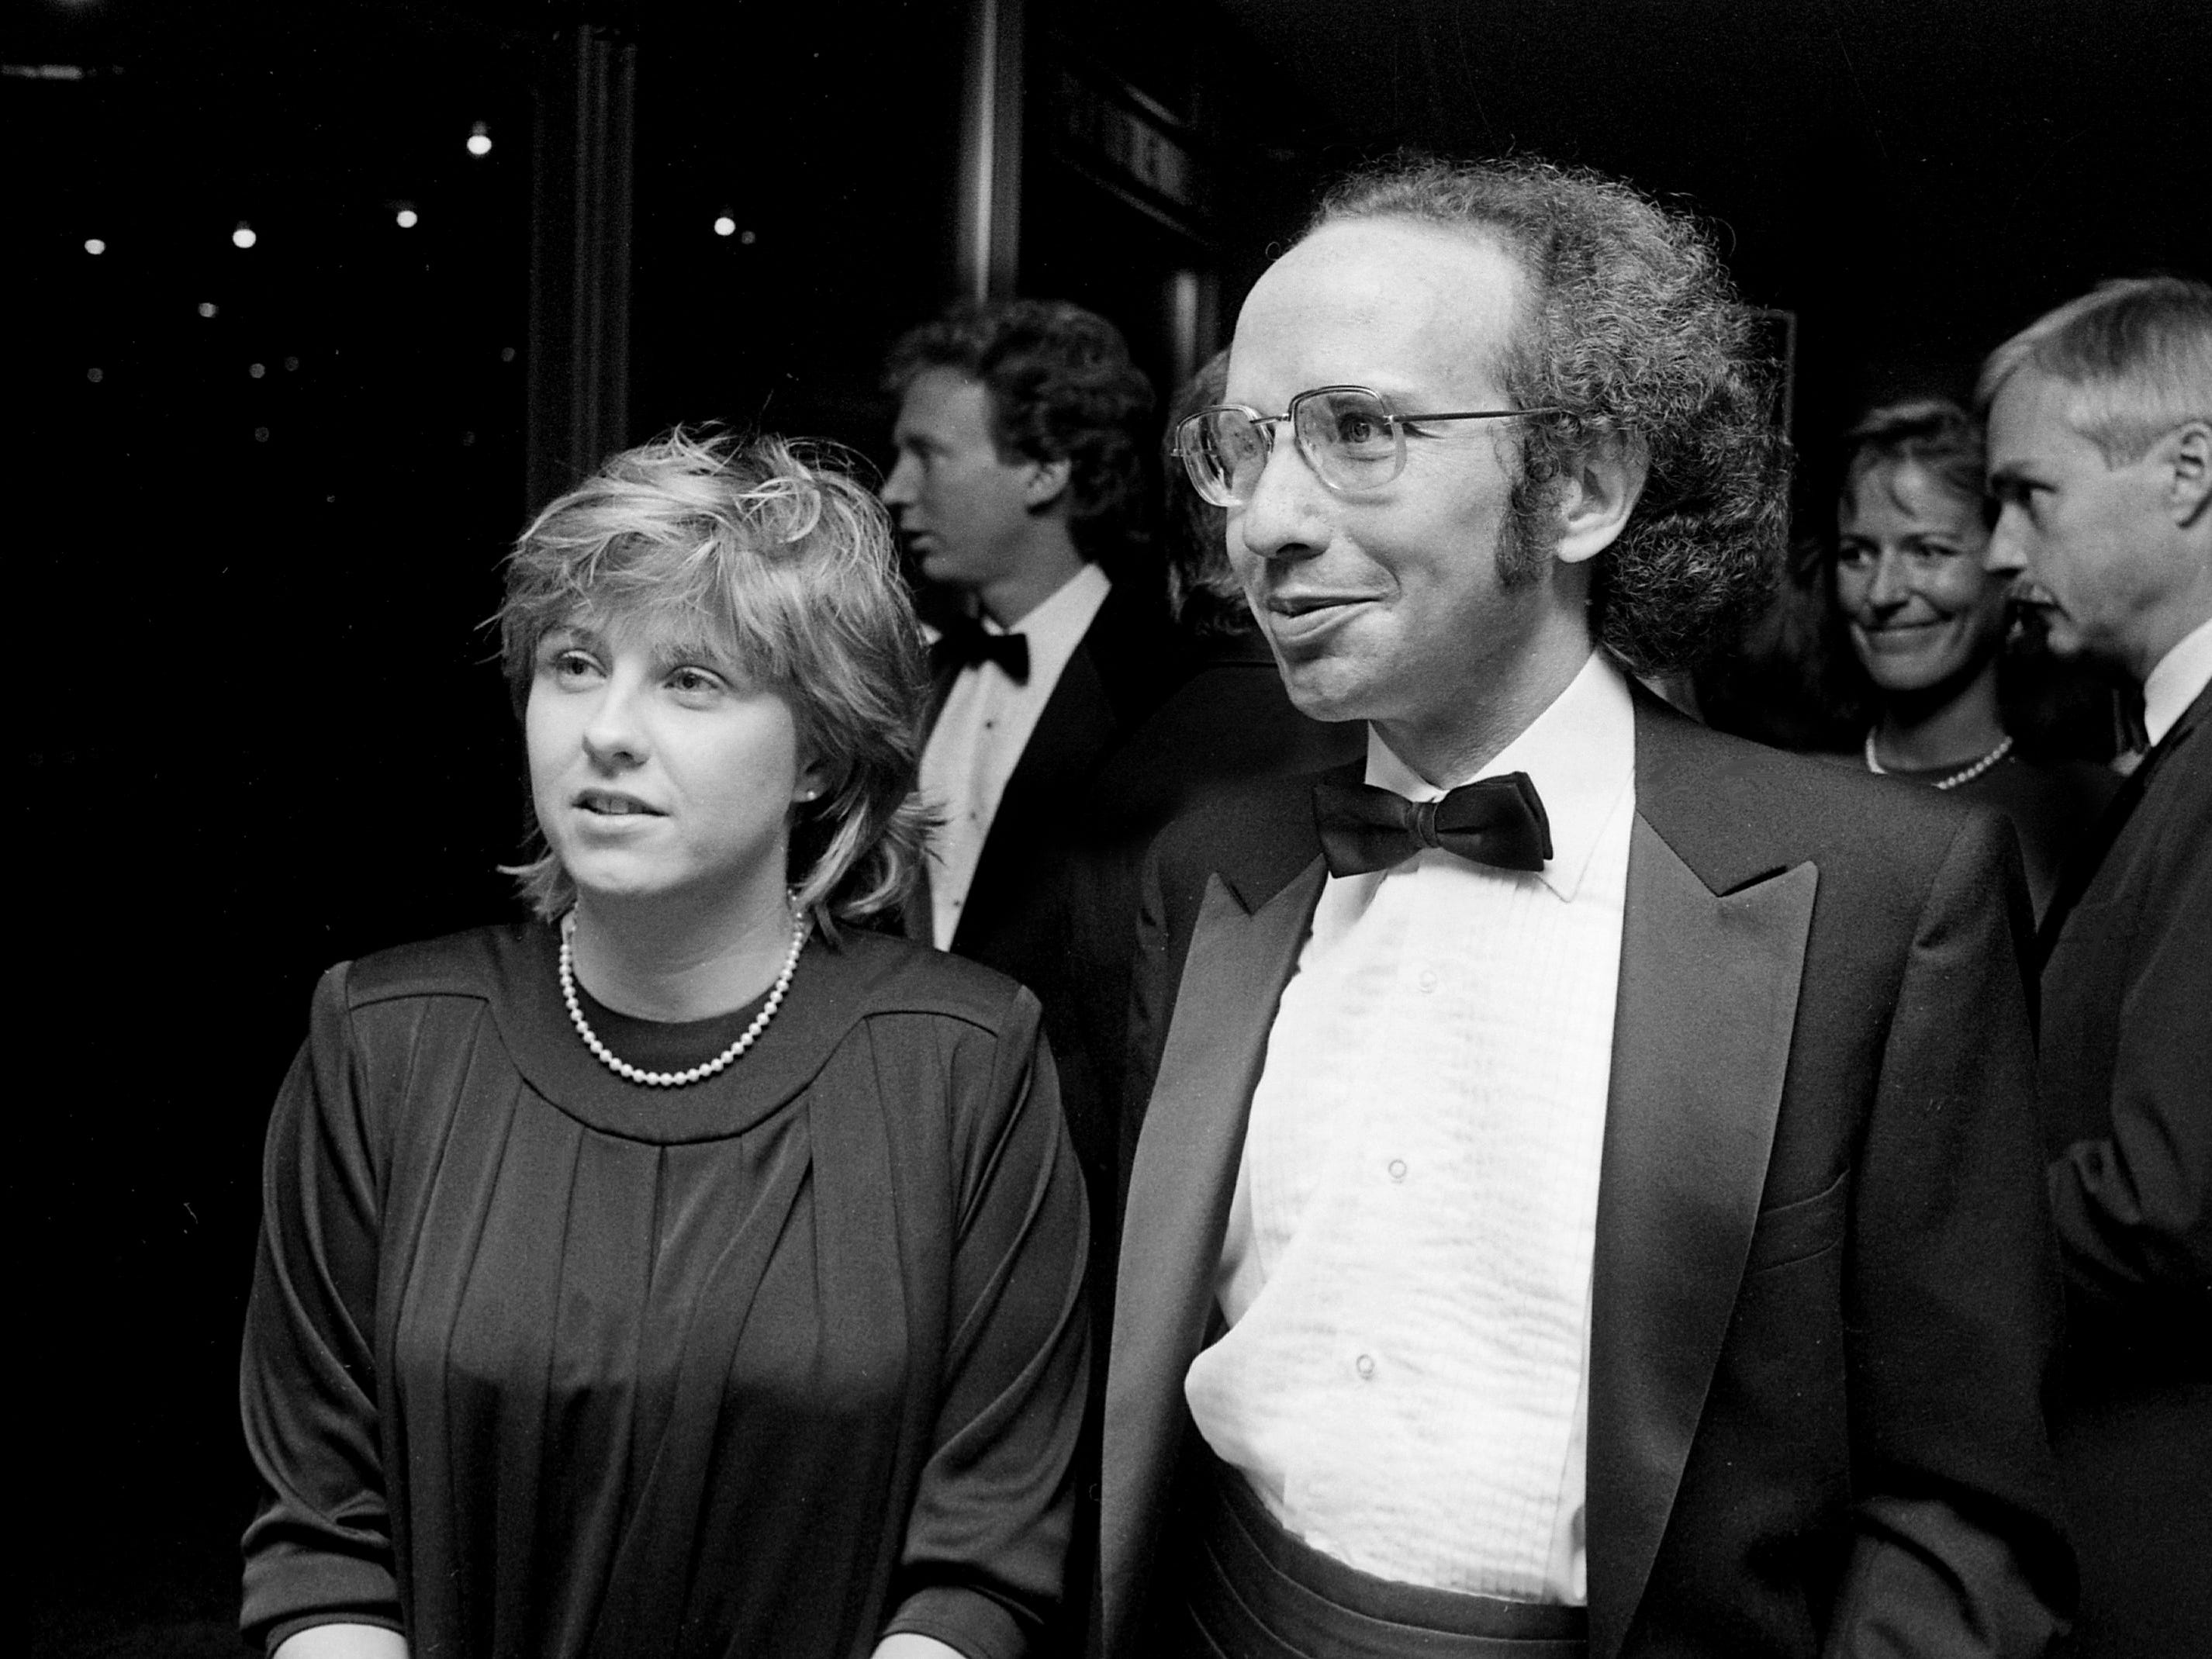 Tennessean news reporter Renee Elder and music reporter Tommy Goldsmith attend the annual BMI Awards banquet Oct. 15, 1985.